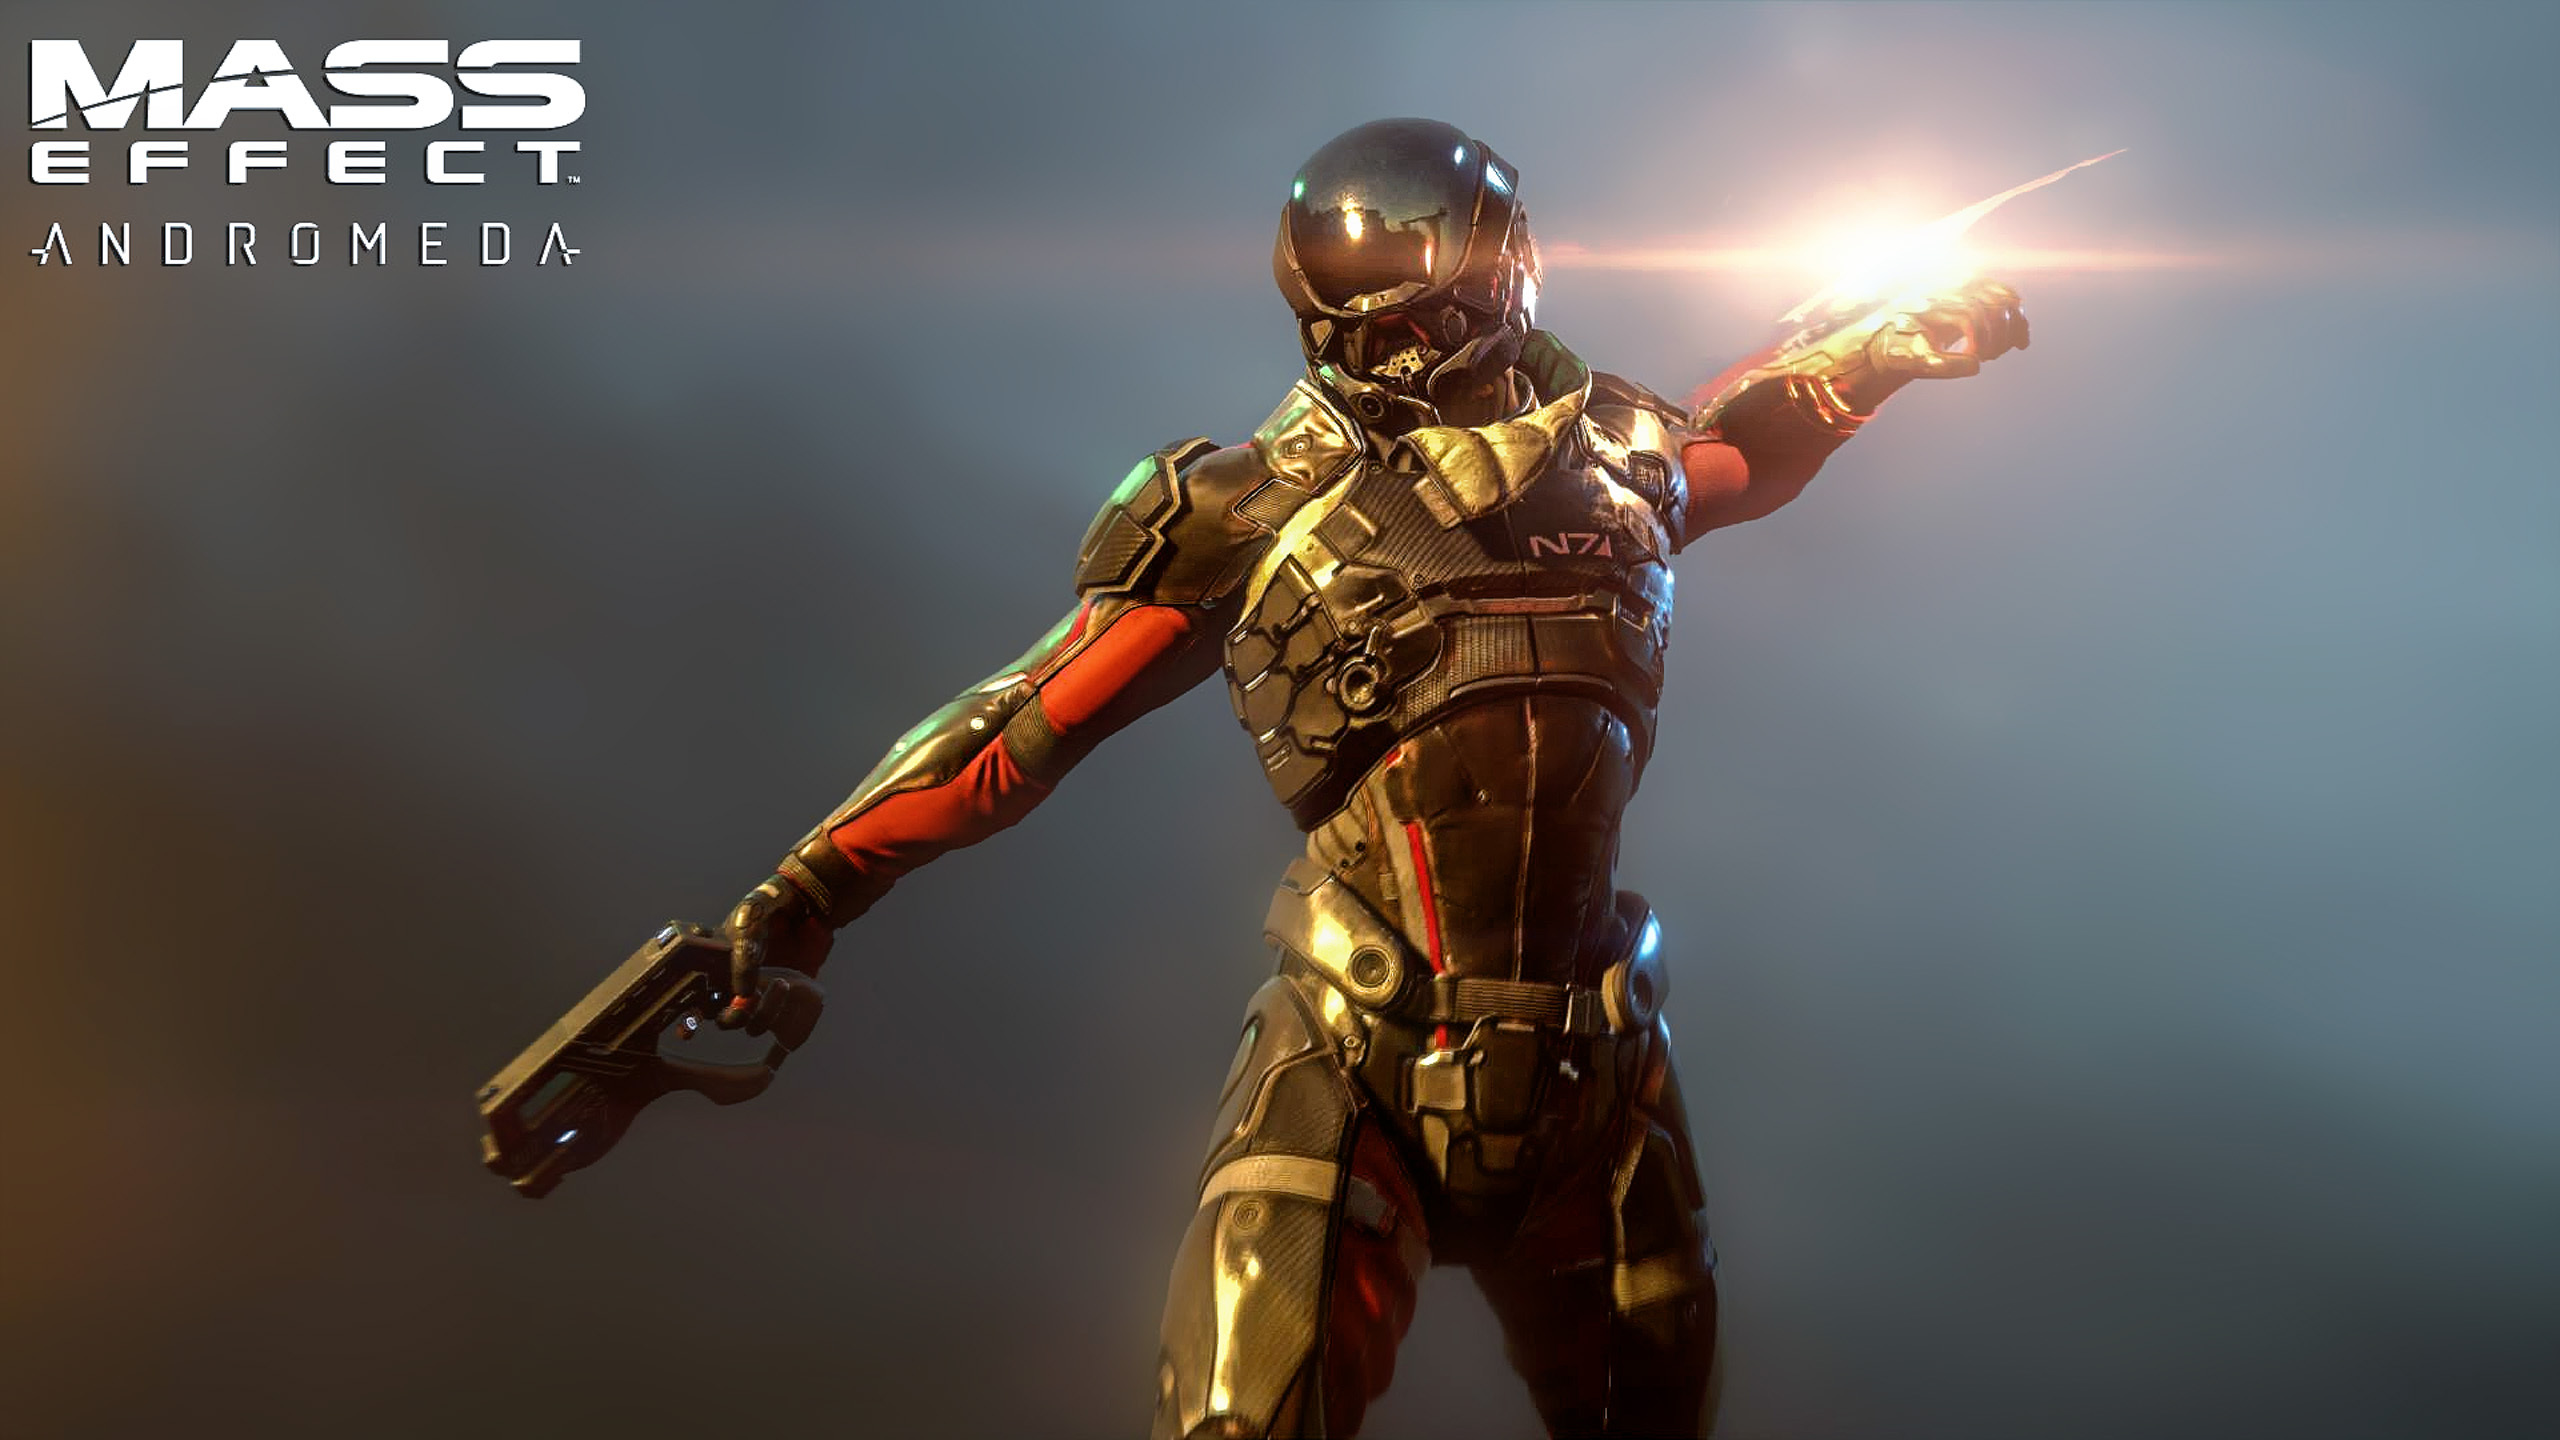 Mass Effect: Andromeda Wallpapers Images Photos Pictures ...